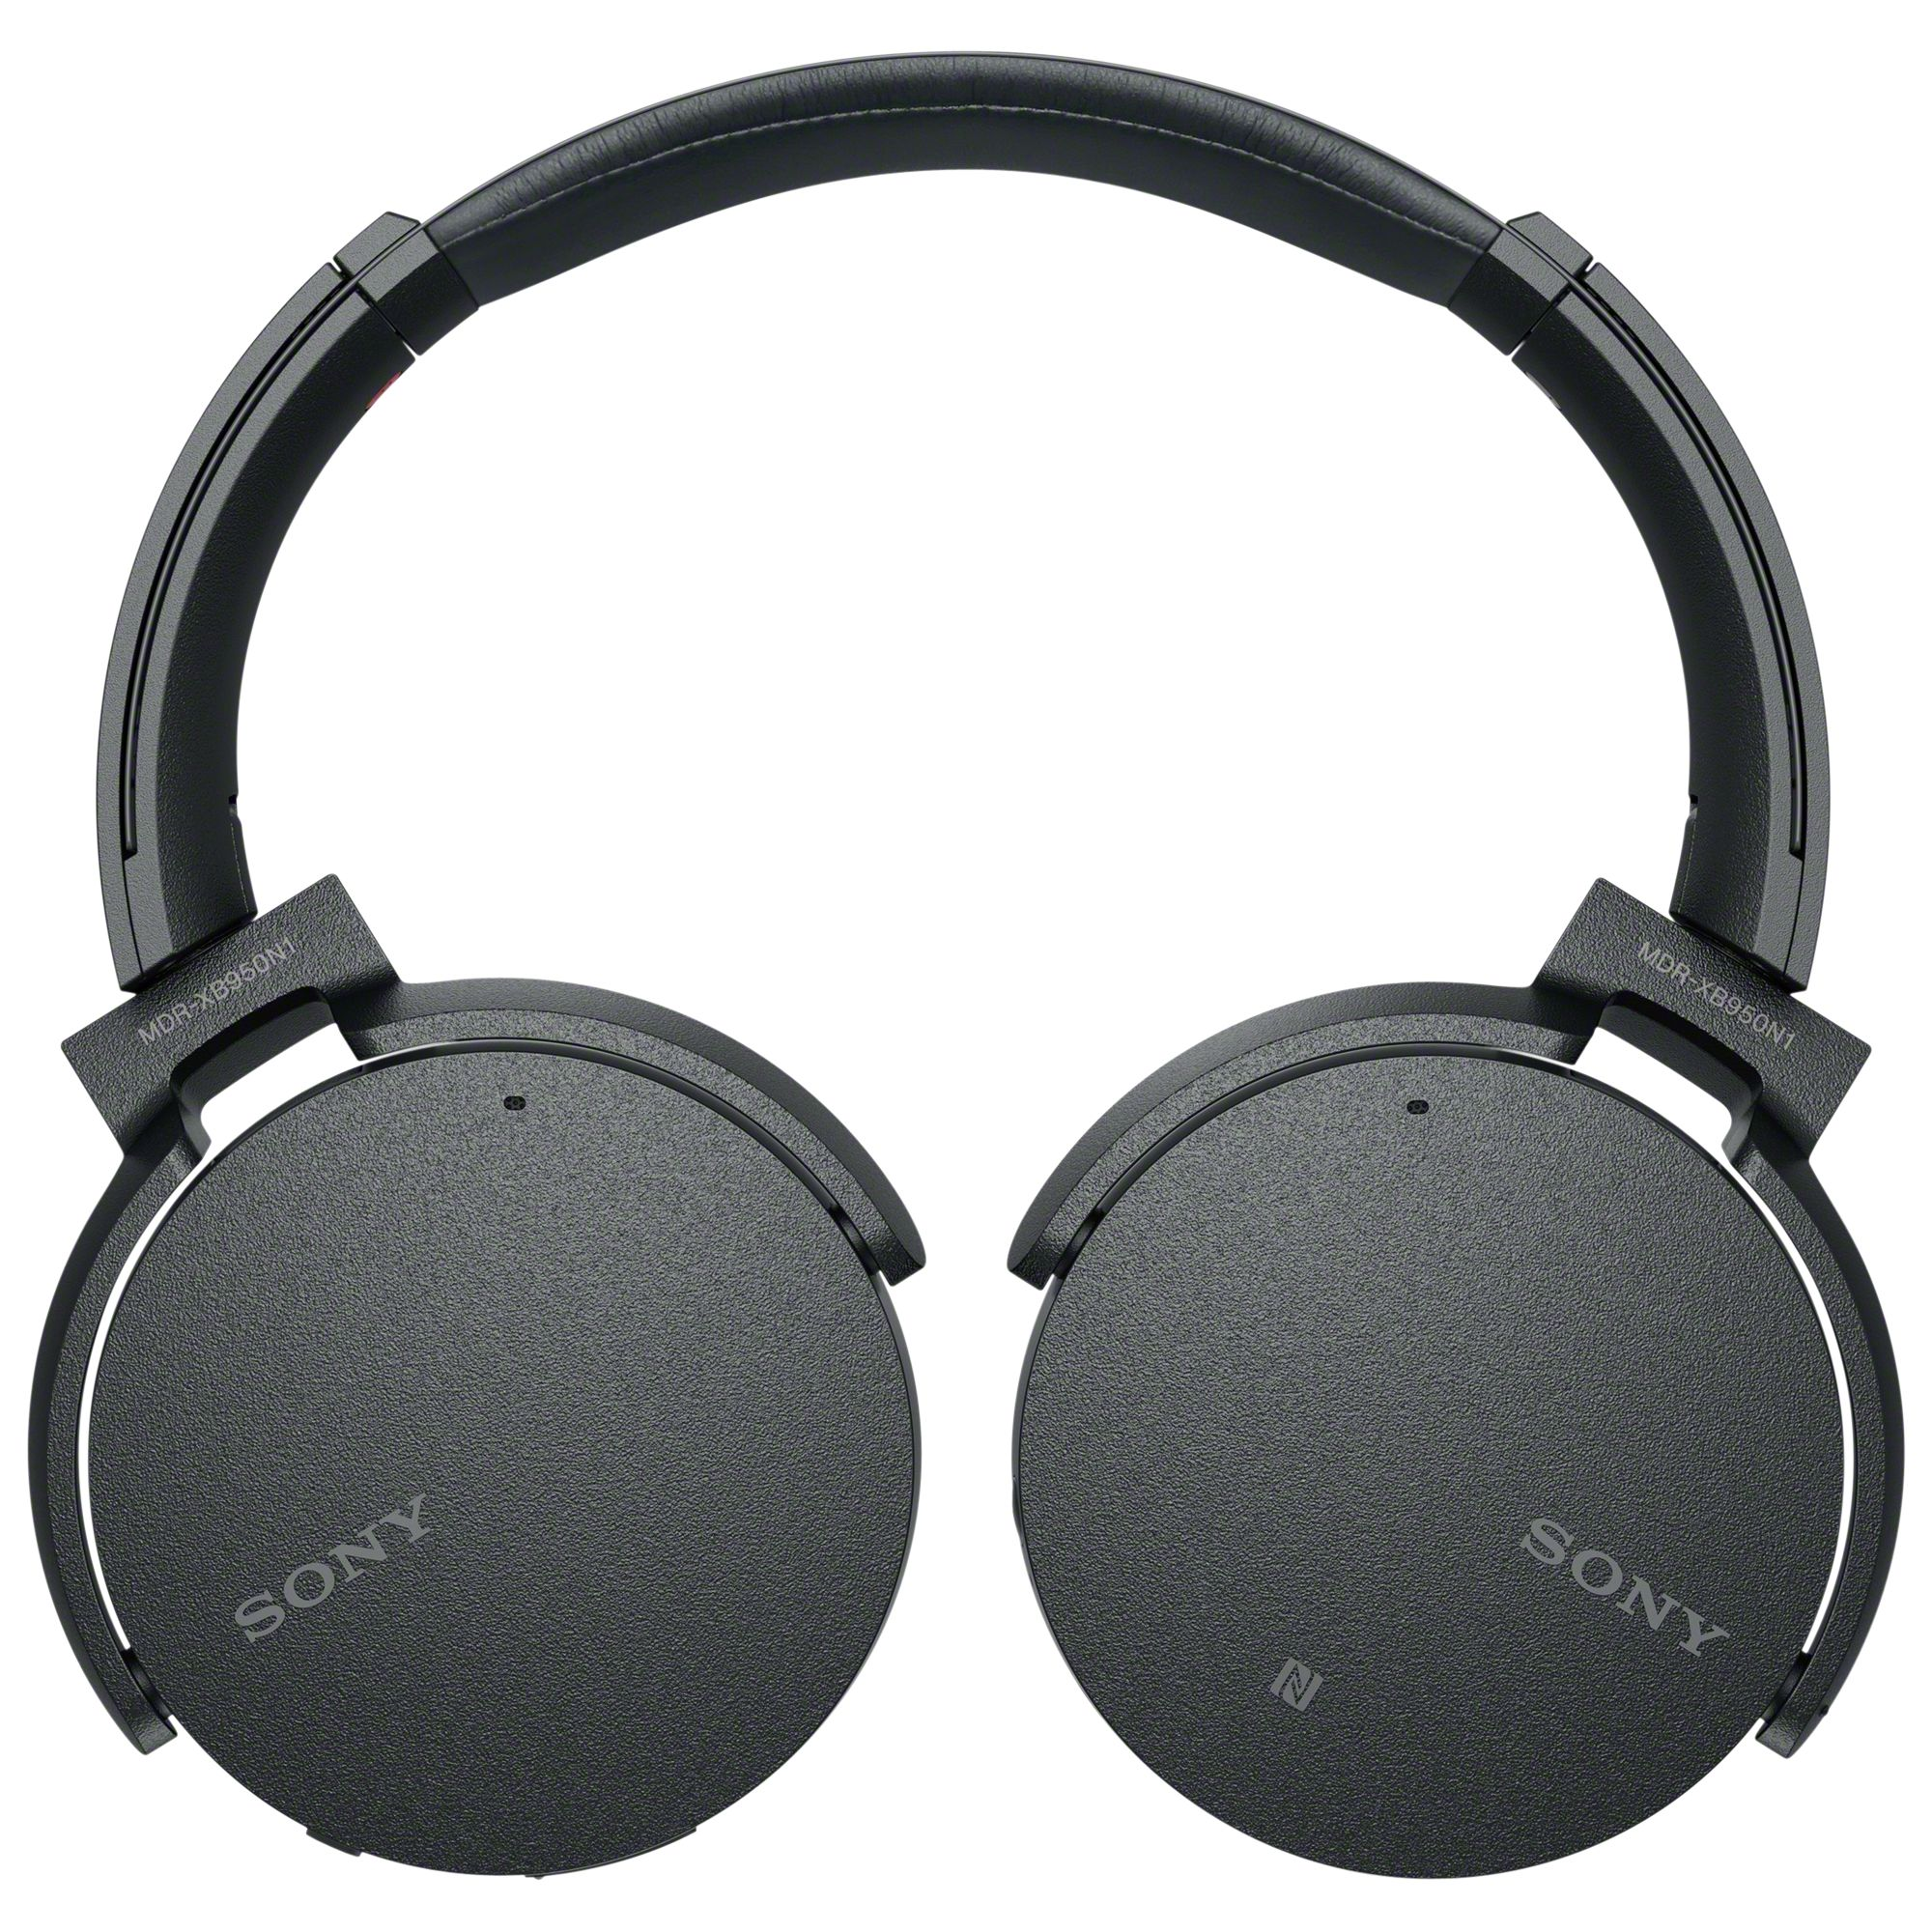 Sony Mdr Xb950n1 Noise Cancelling Extra Bass Bluetooth Nfc Over Ear Headset Magnet Sport Super Fitness Headphones At John Lewis Partners